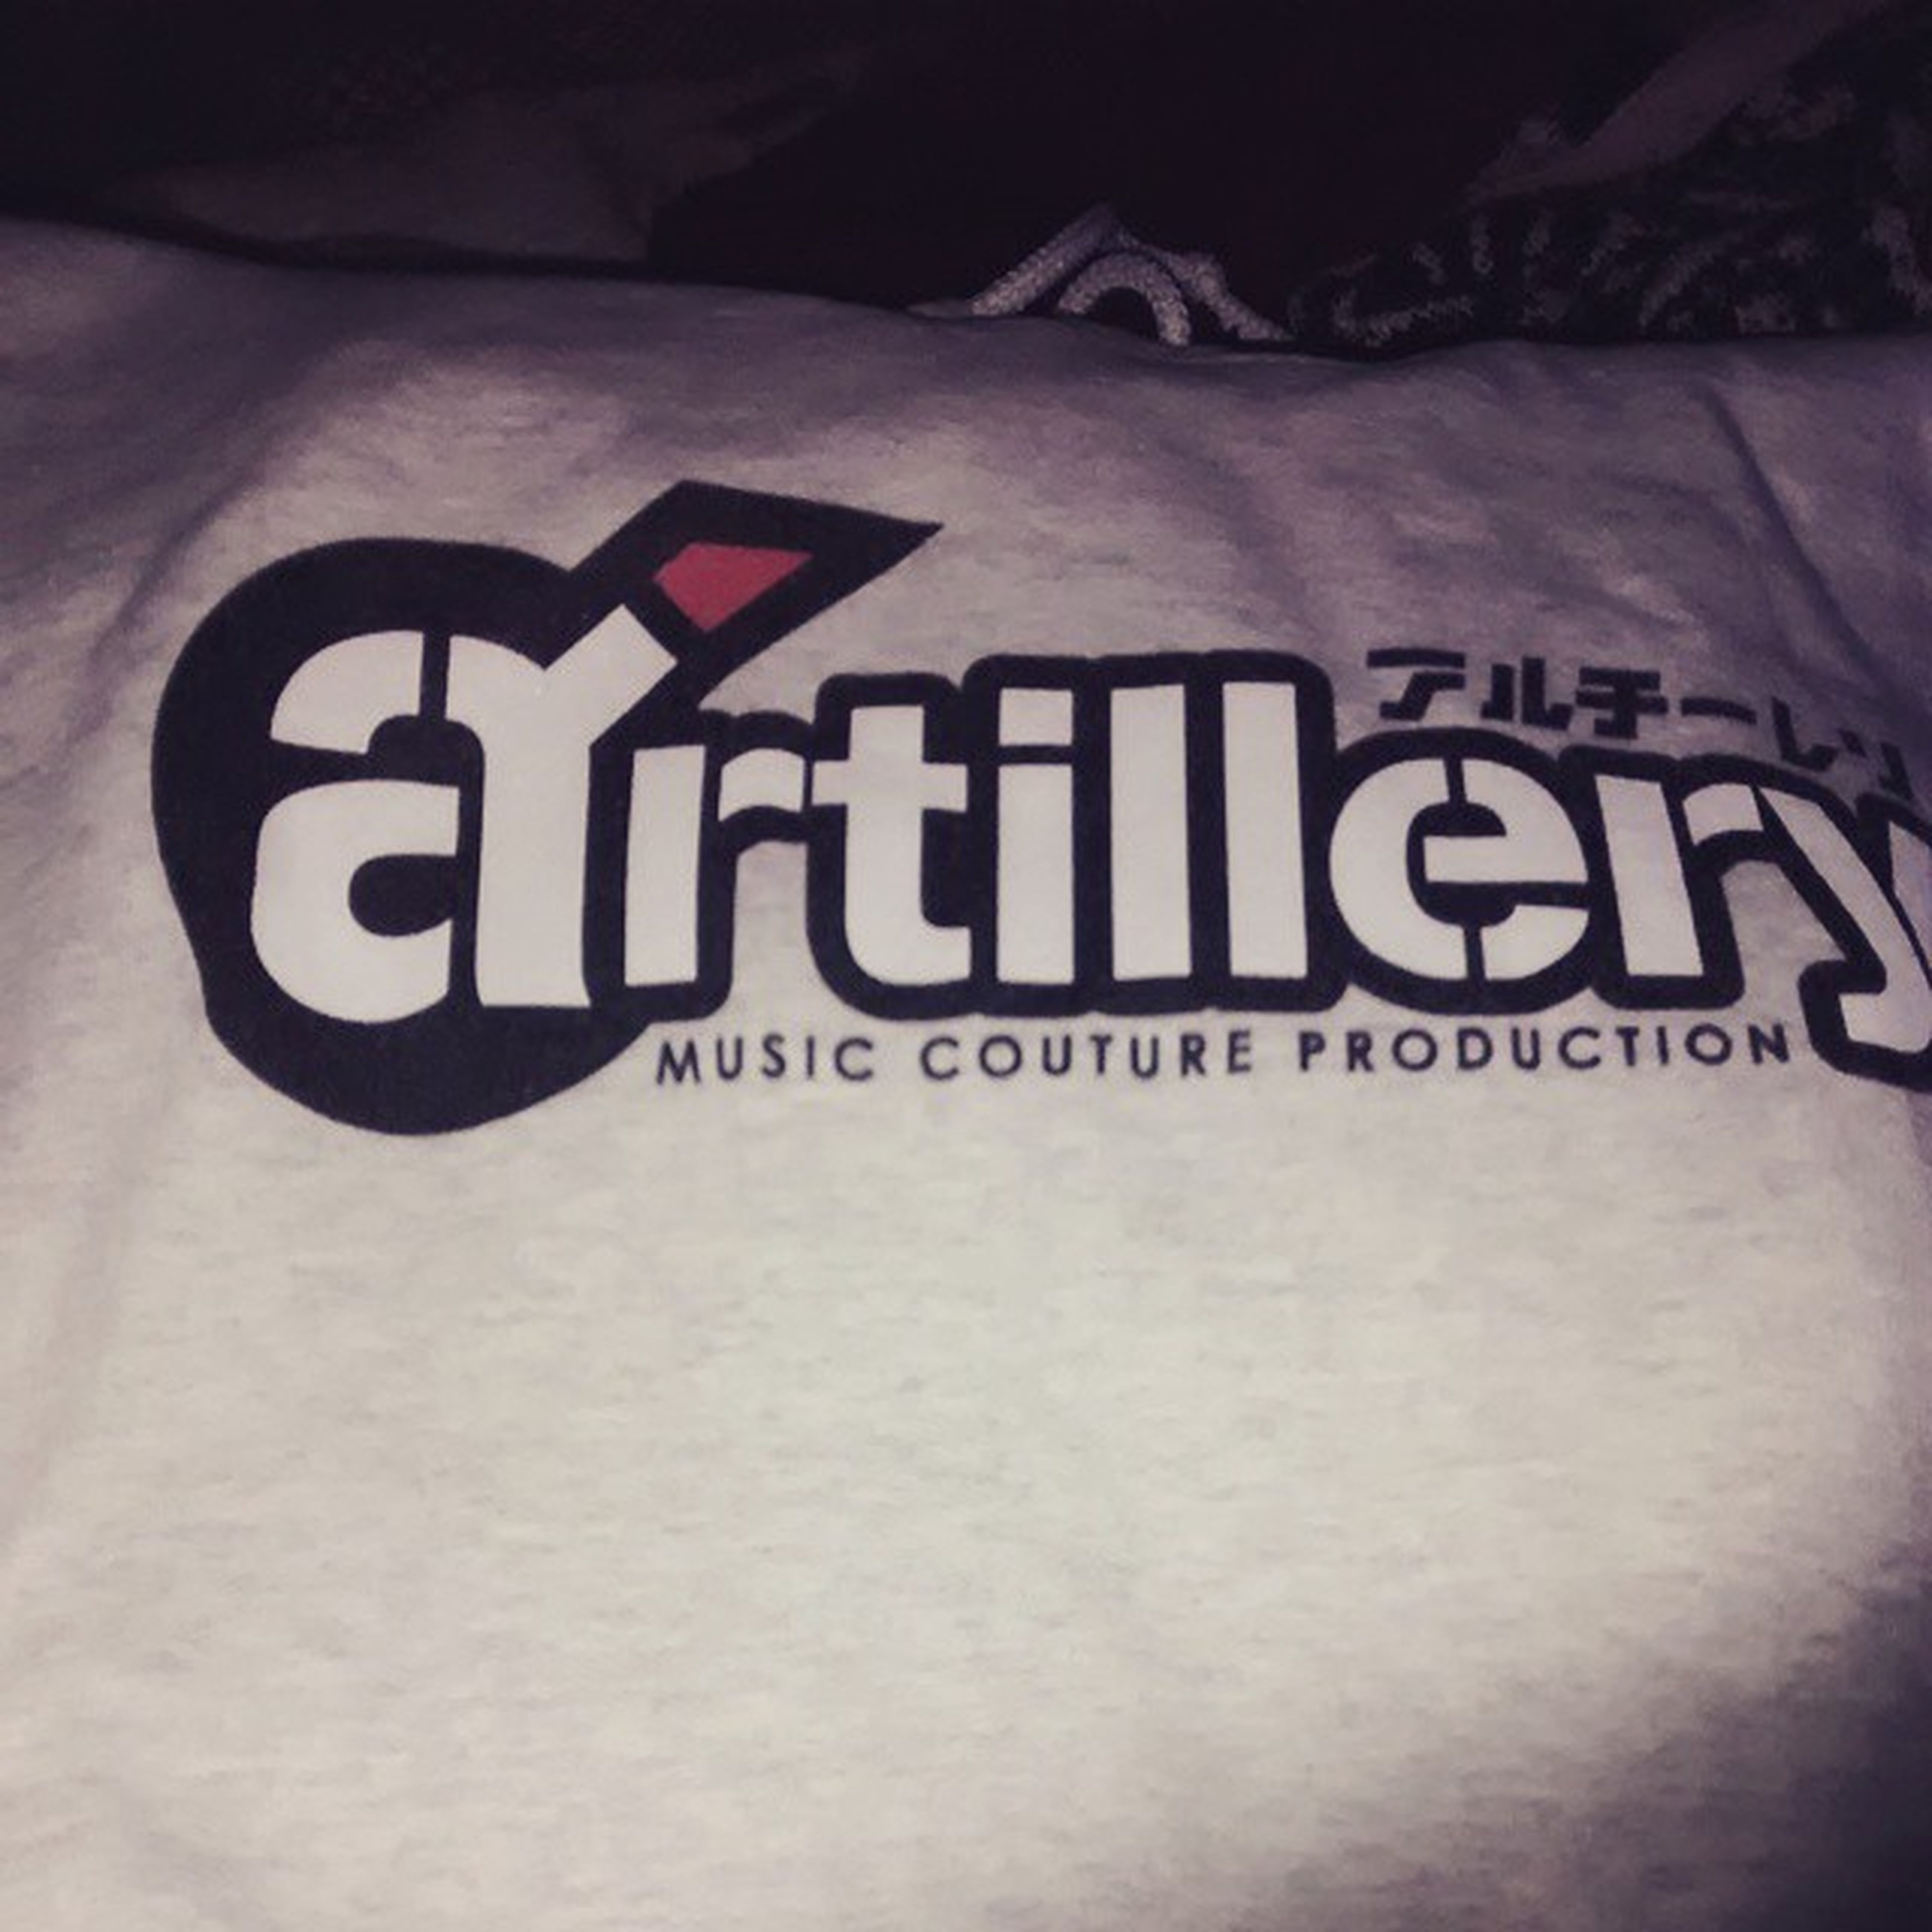 Yes!! I finally got it!!! Im going to be warm now 😊😊😊😊😁😁😁😁😍😍😍😍 Artillerymusic NewSweater